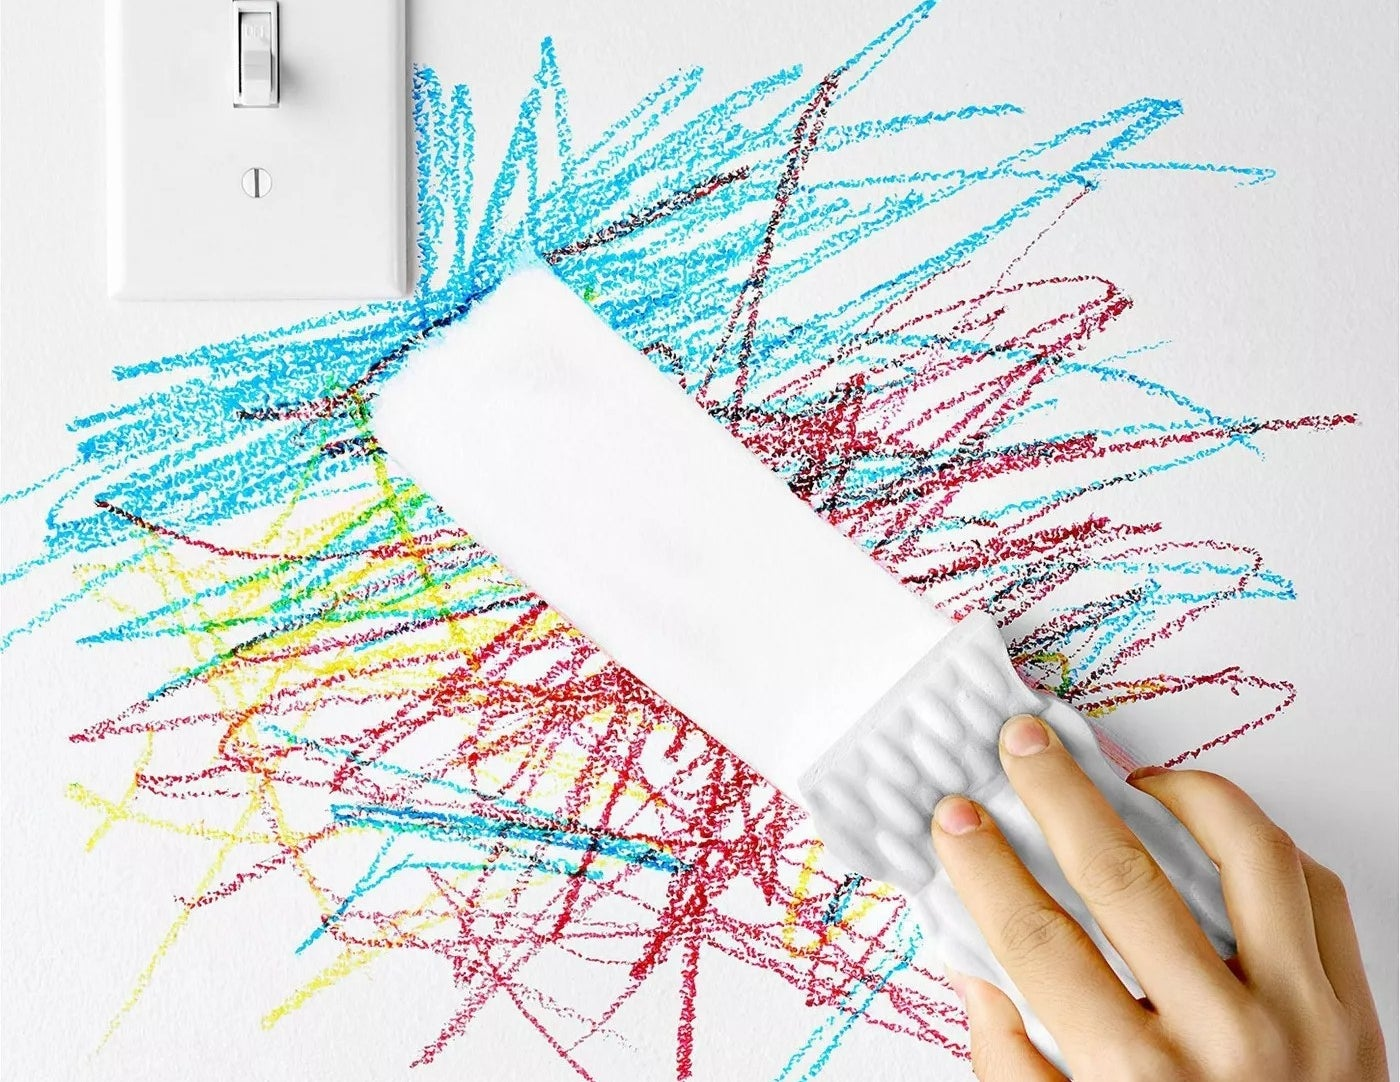 A Magic Eraser removing crayon from a wall